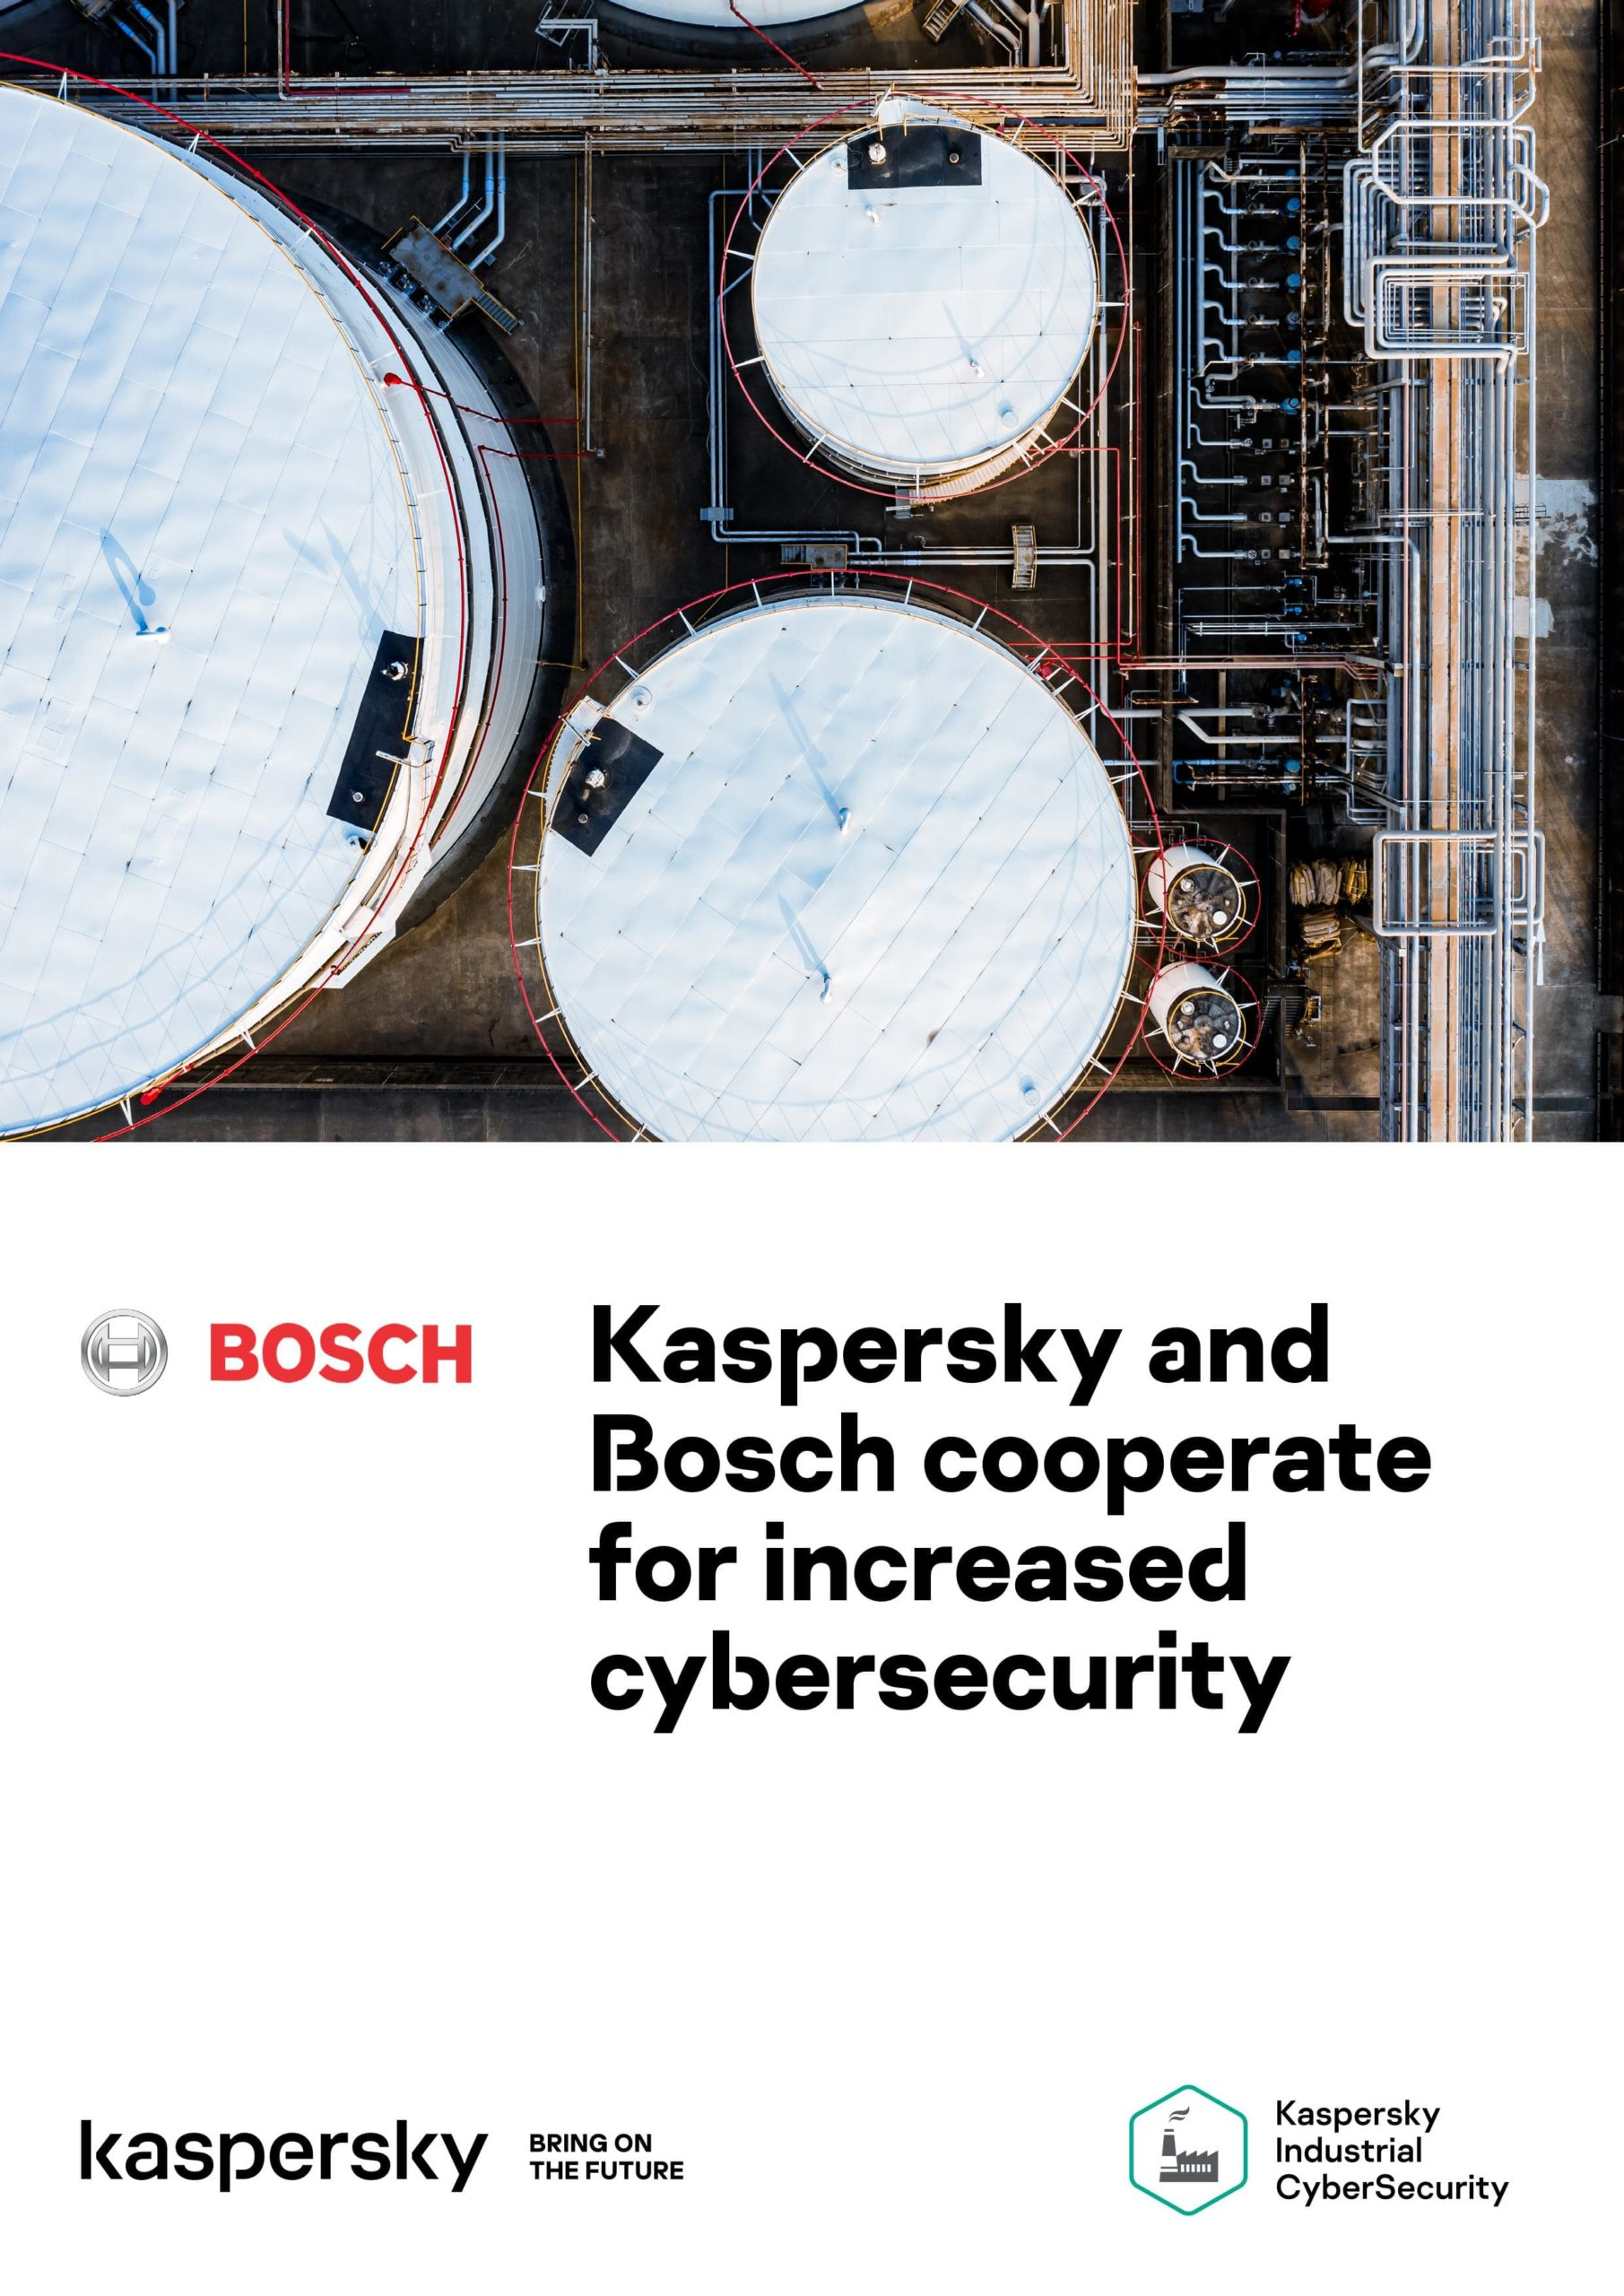 Kaspersky and Bosch cooperate for increased cybersecurity